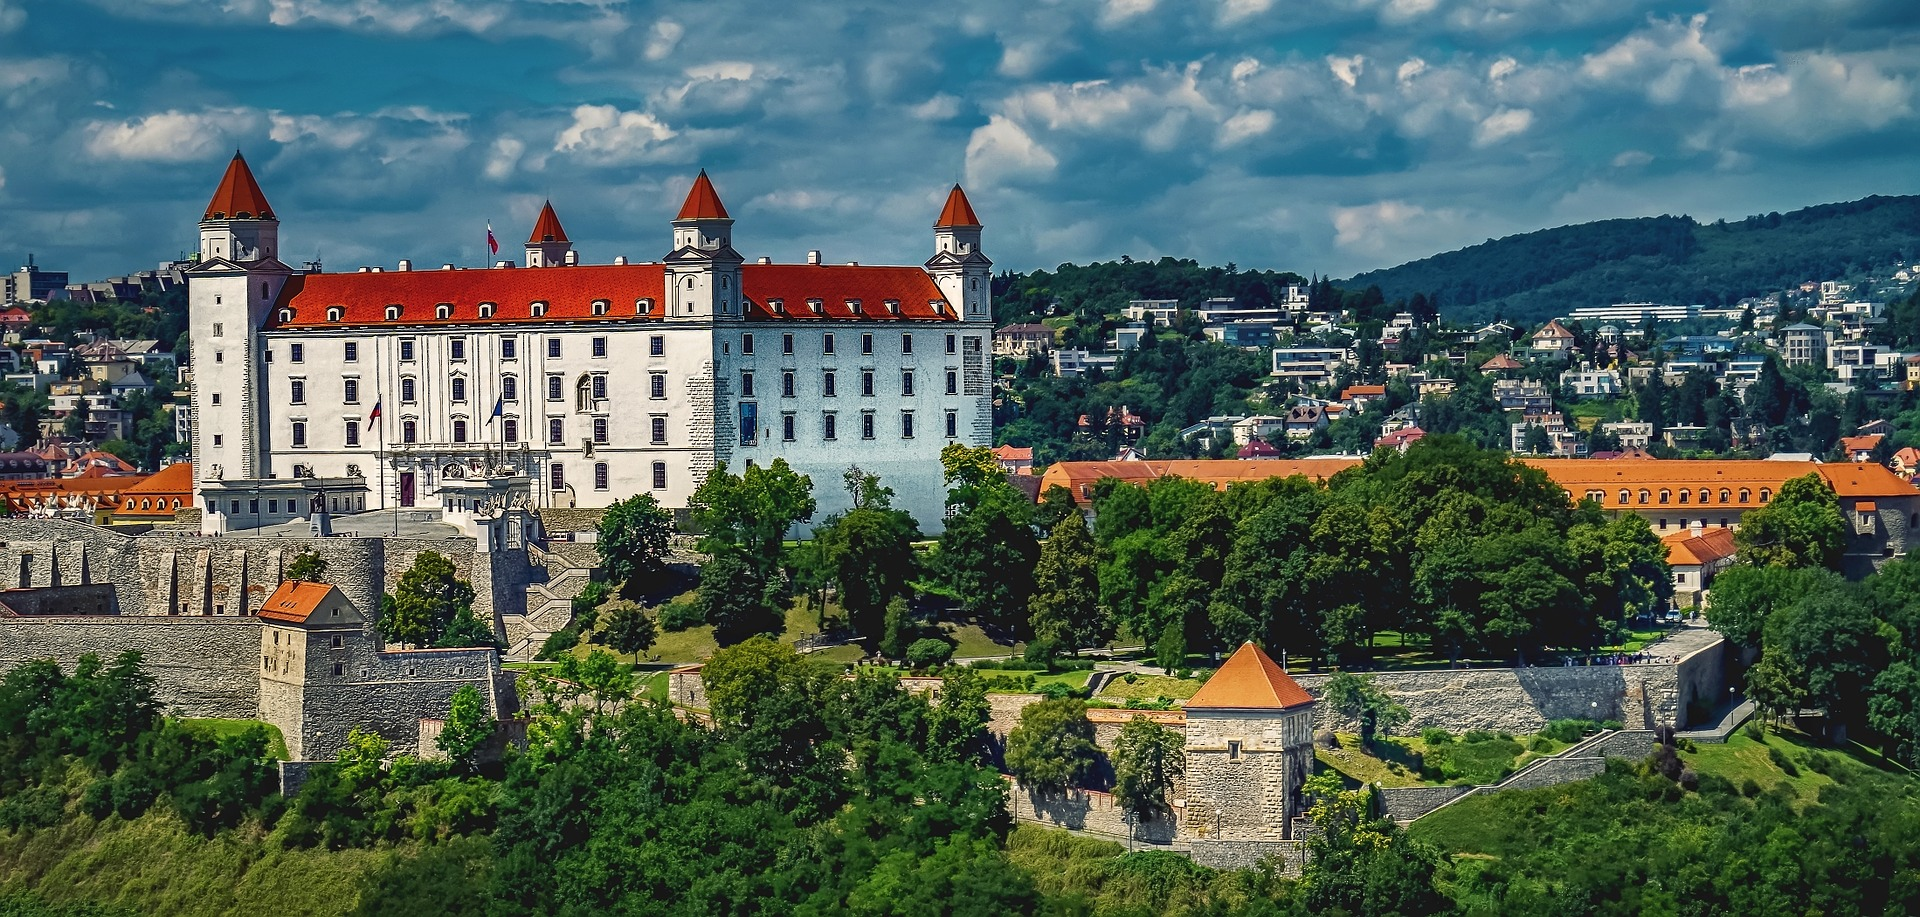 Trianon 100: Hungary and Slovakia on Verge of Finding Common Ground?